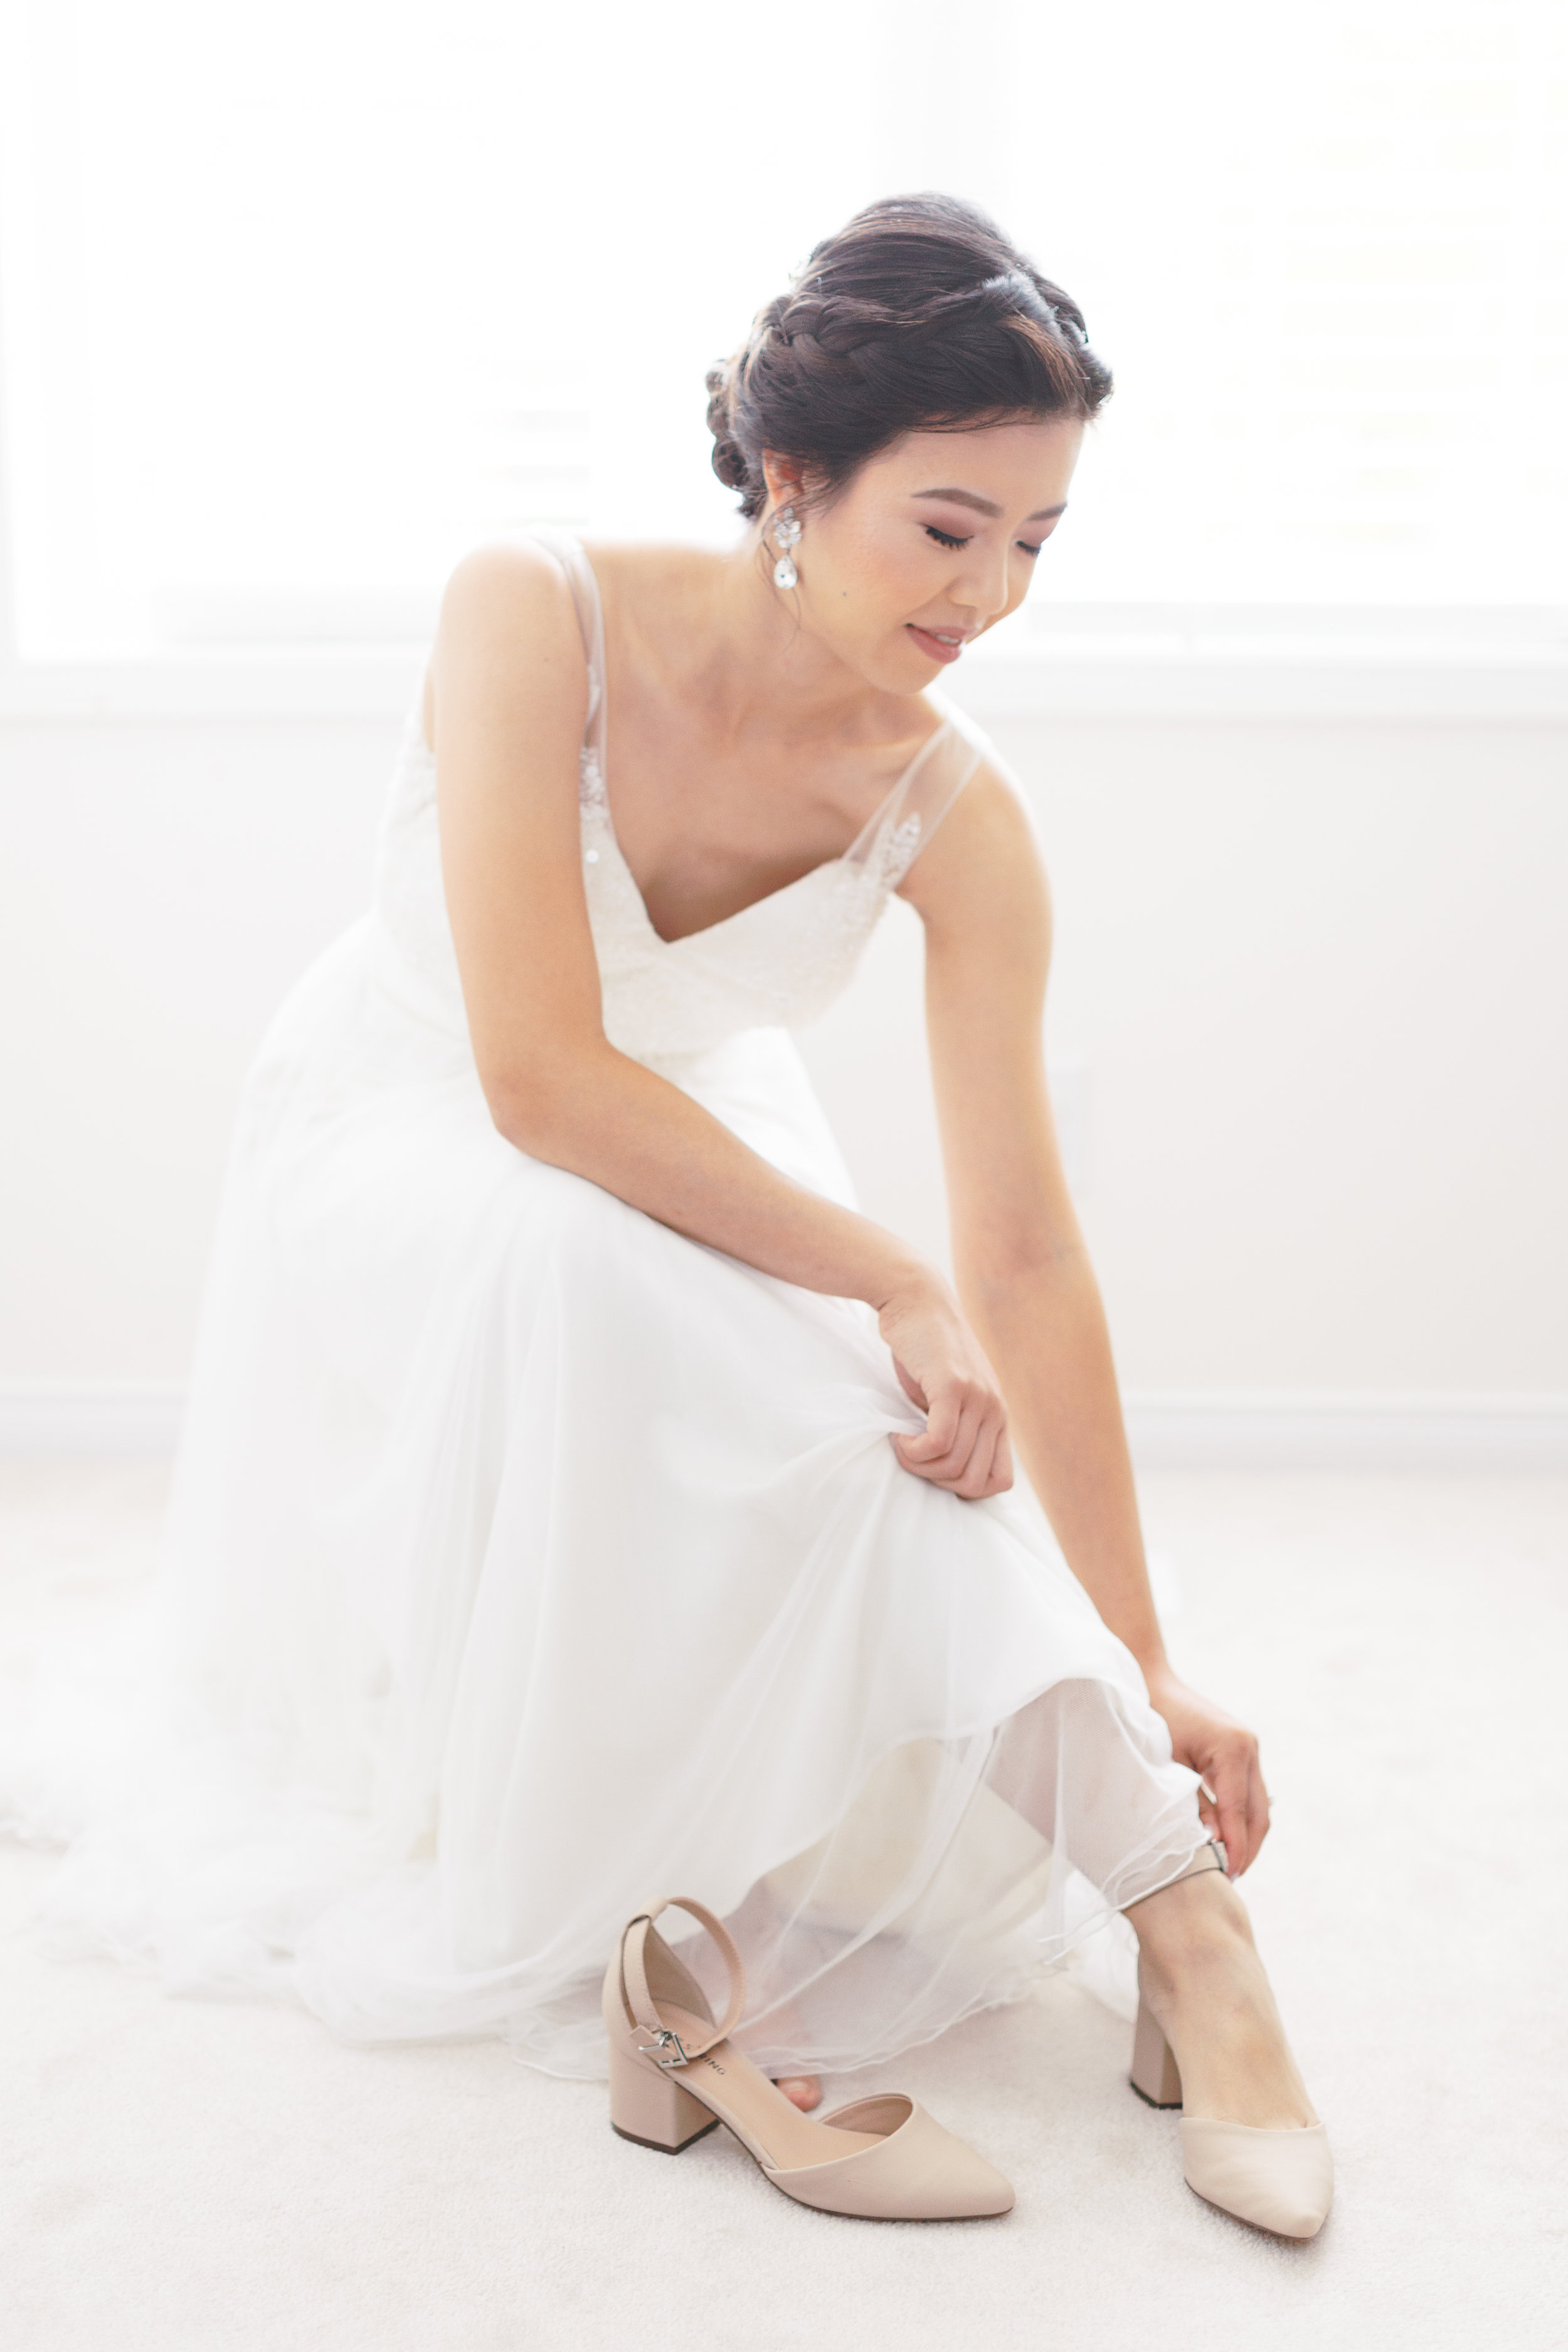 Paradise Banquet Hall Wedding - Bride Getting Ready-69.jpg